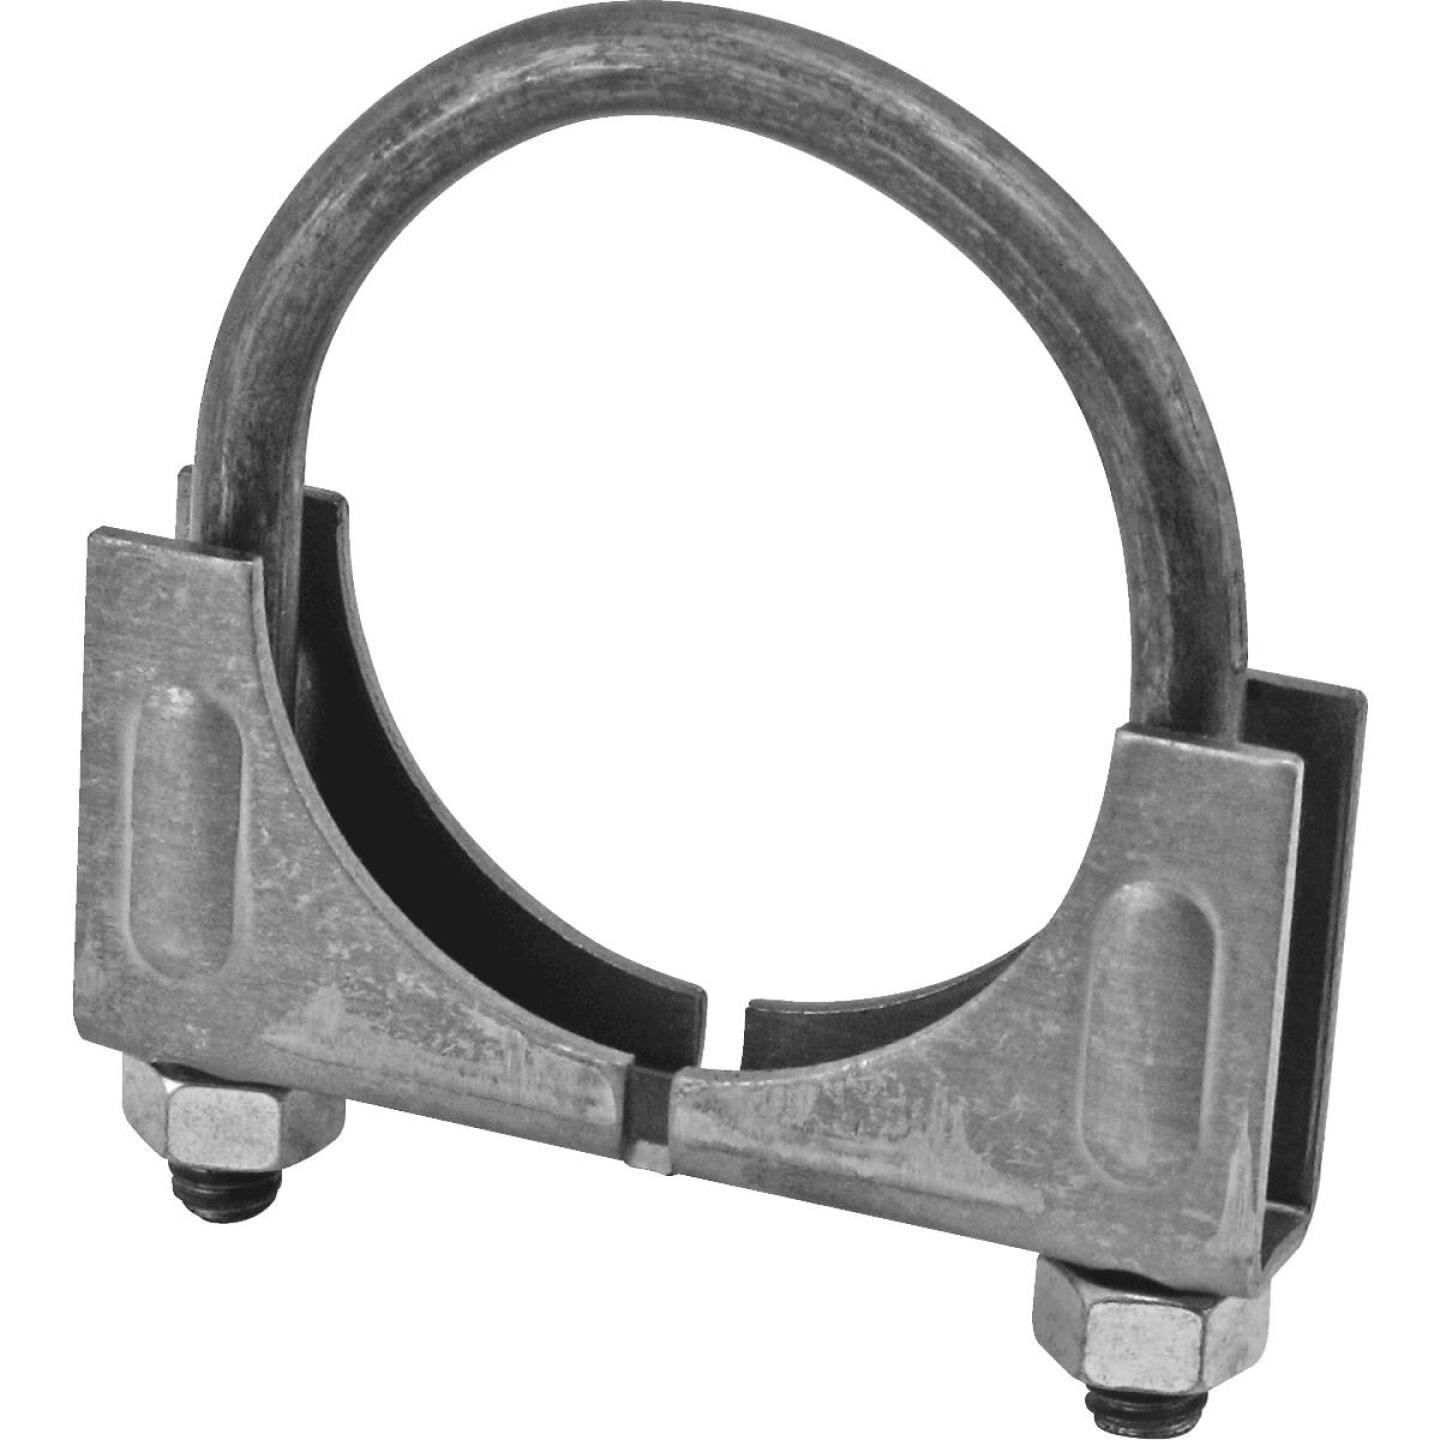 "Victor Saddle 2-1/4"" 13-gauge Steel Muffler Clamp Image 1"